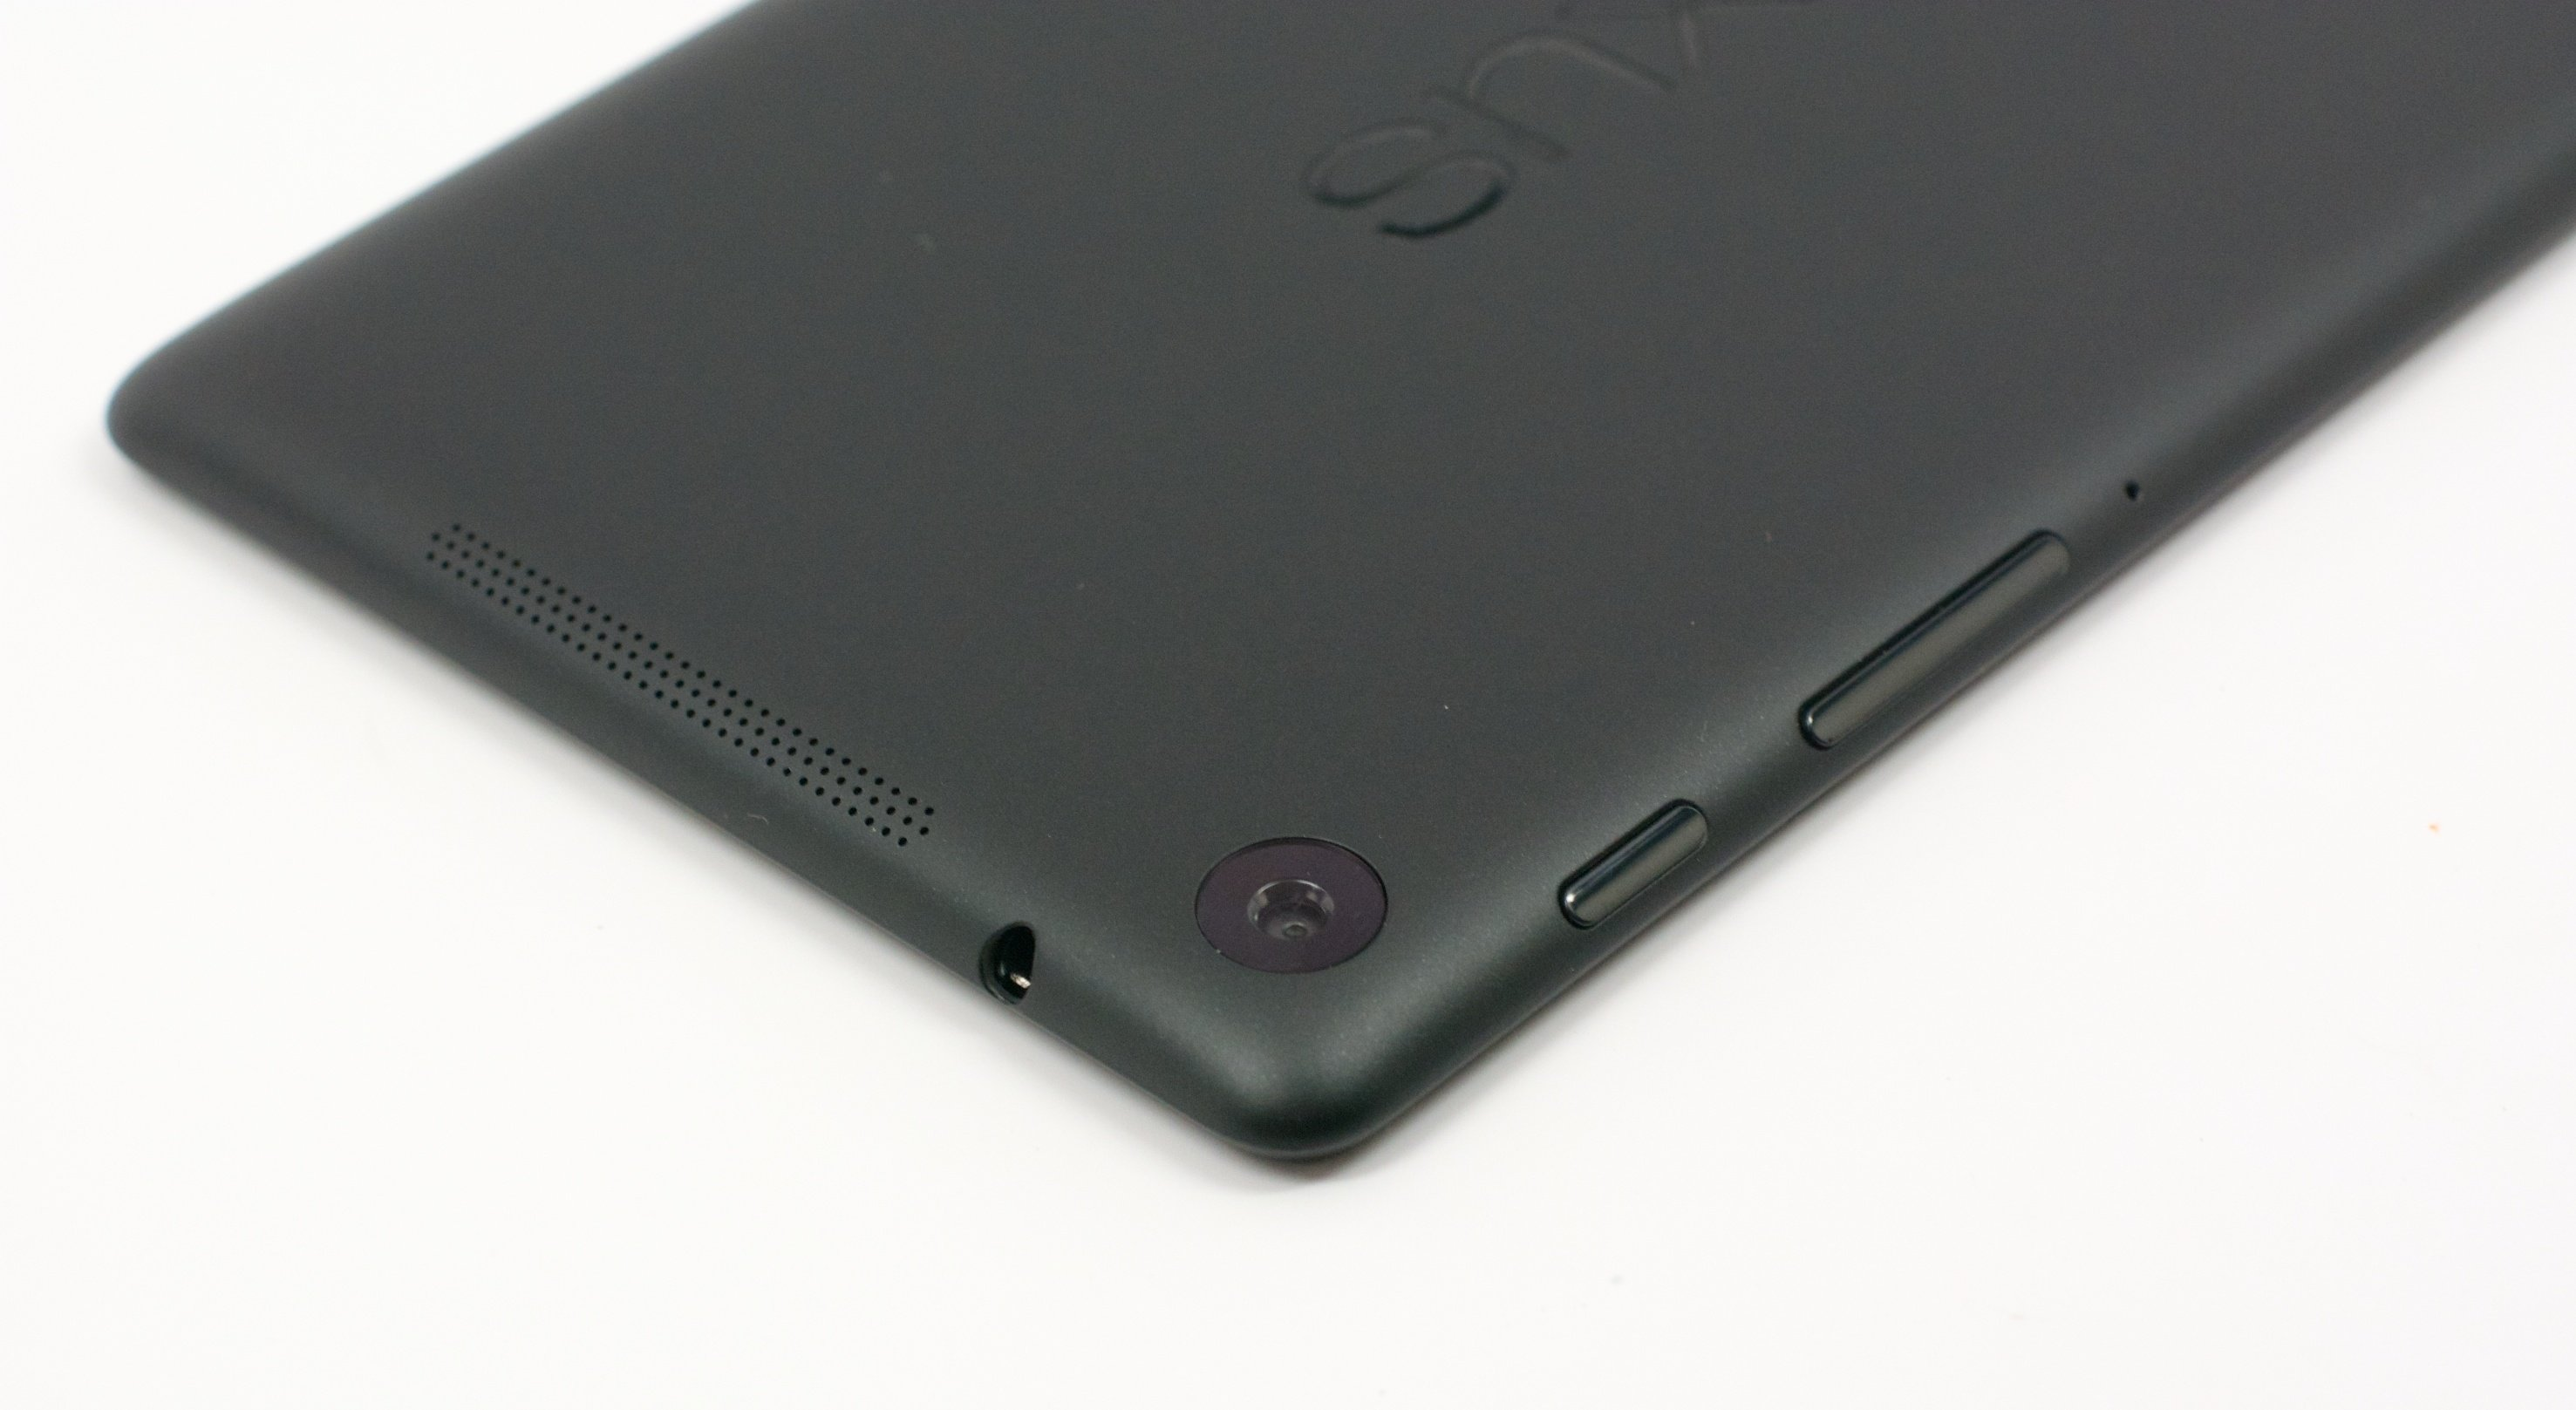 The new Nexus 7 comes with a 5MP camera on the back.